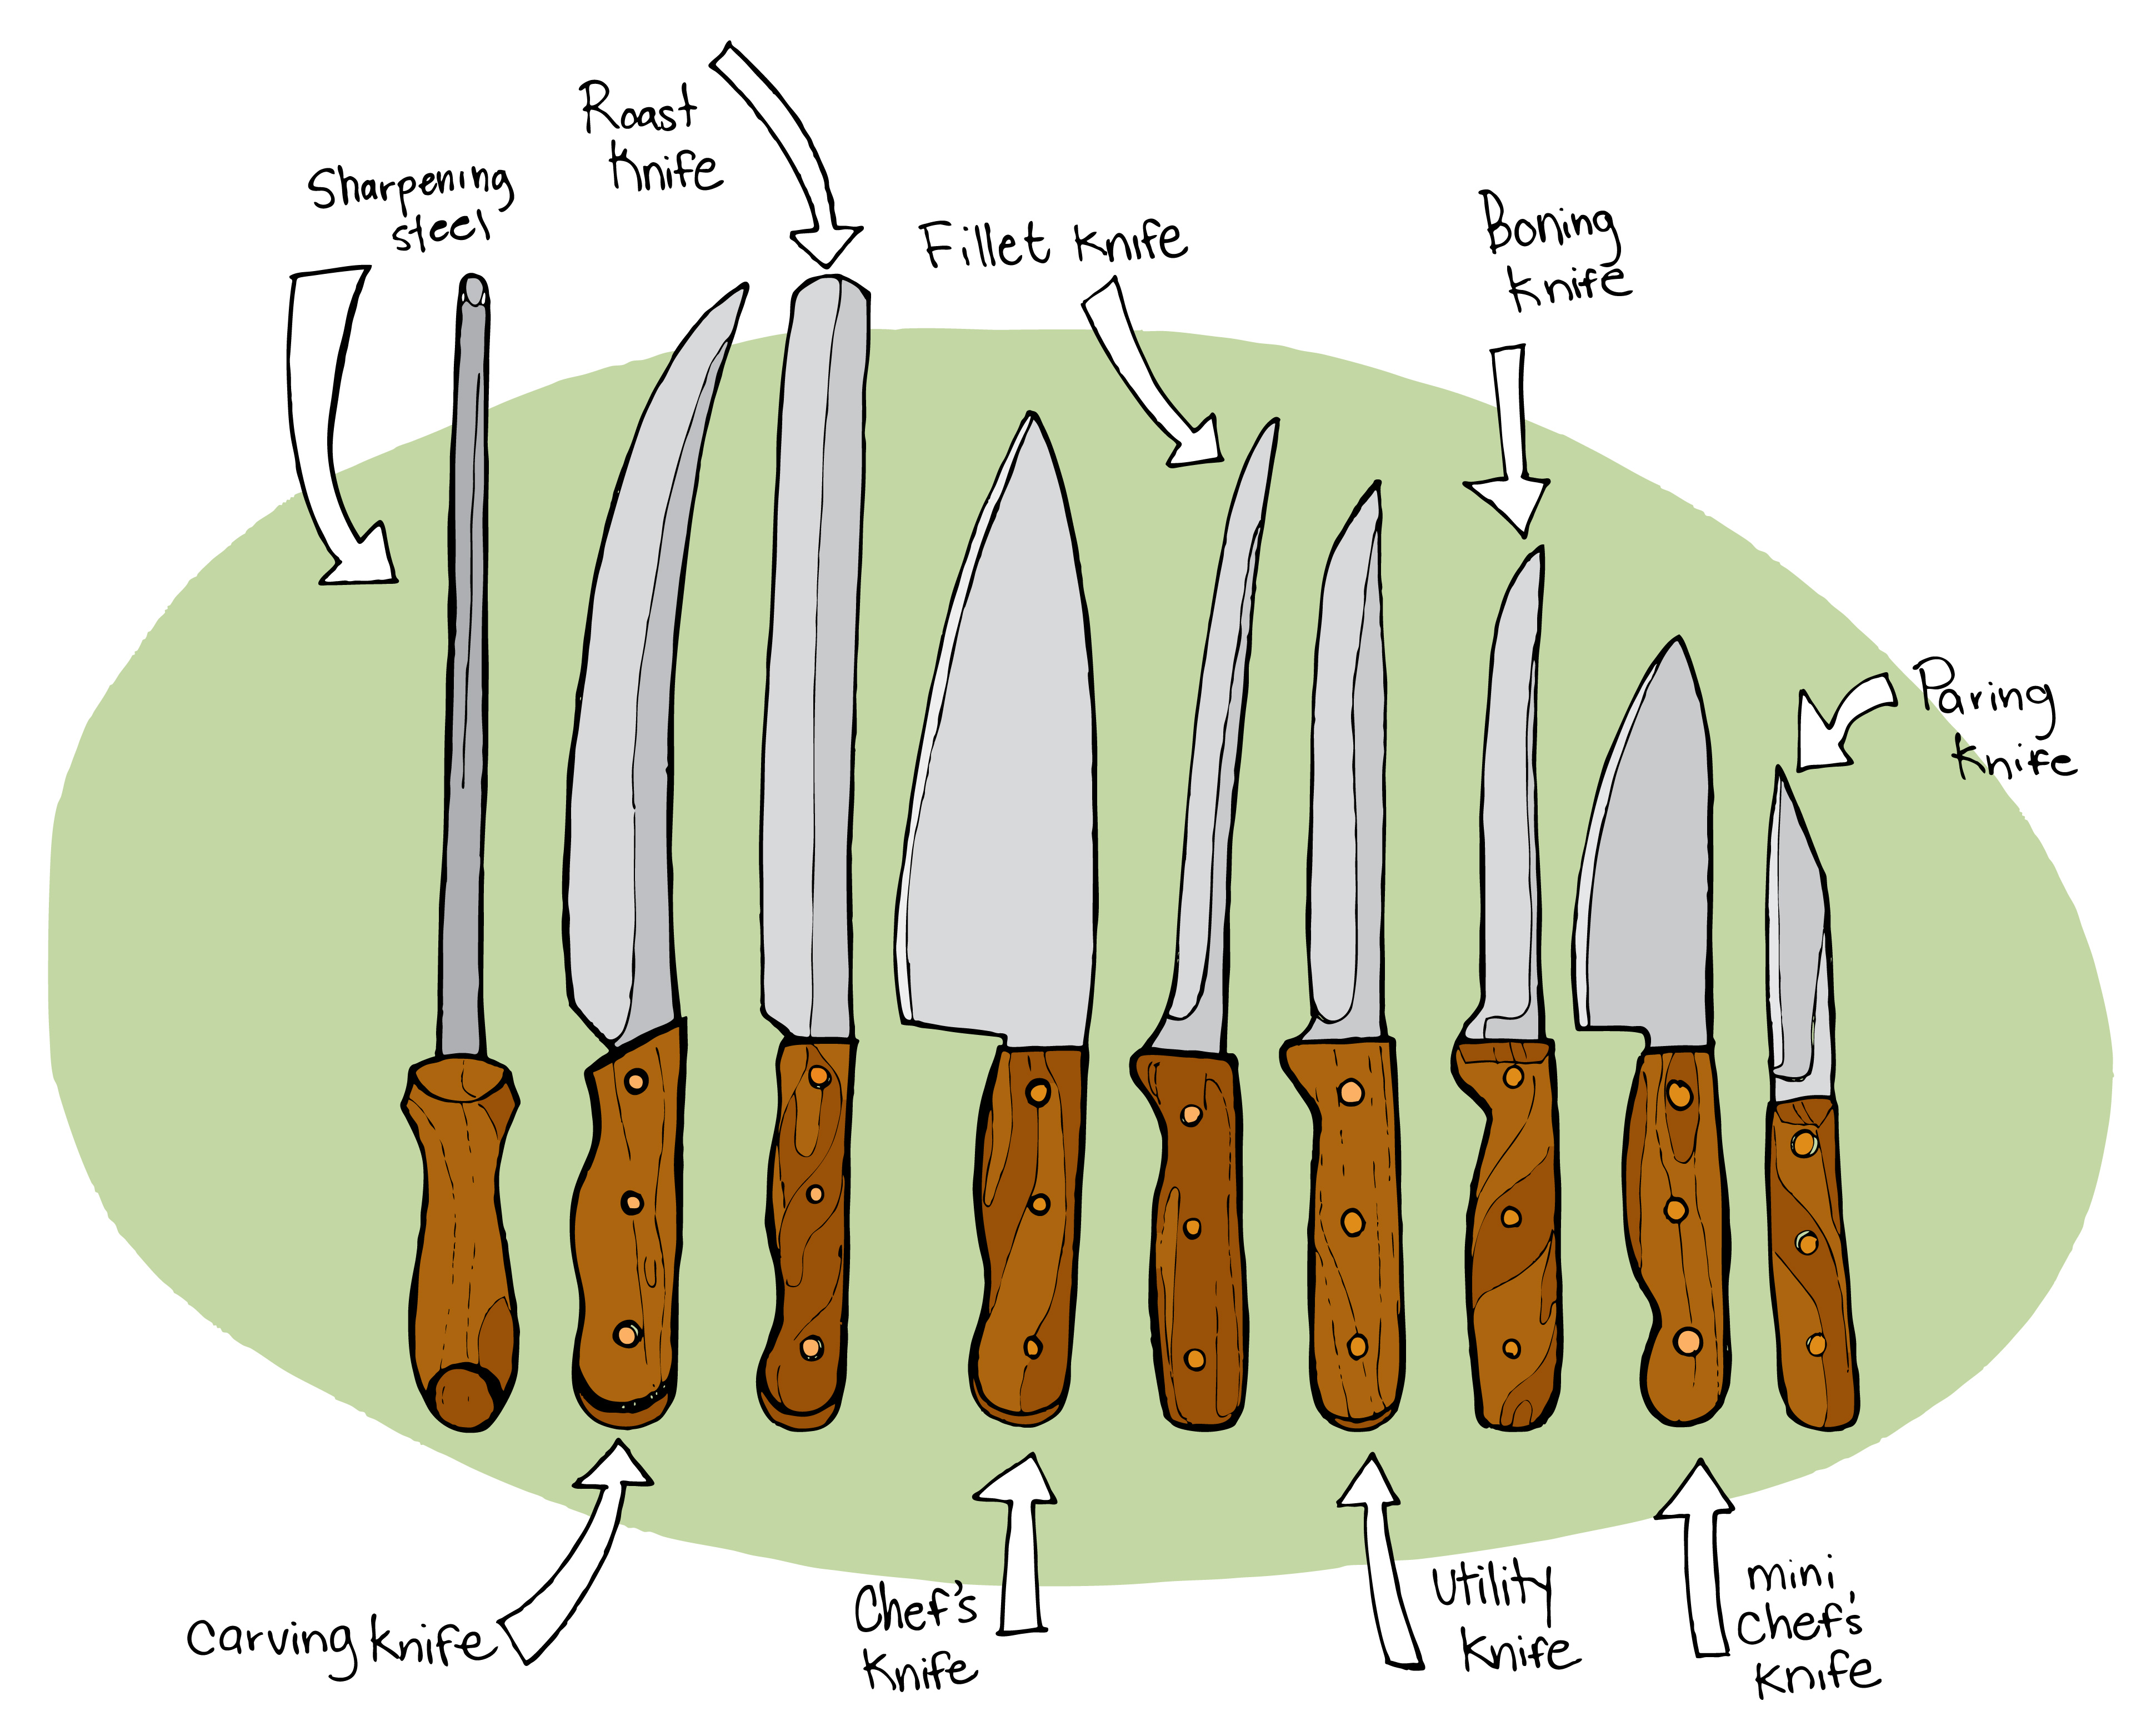 culinary knife cut diagram submited images